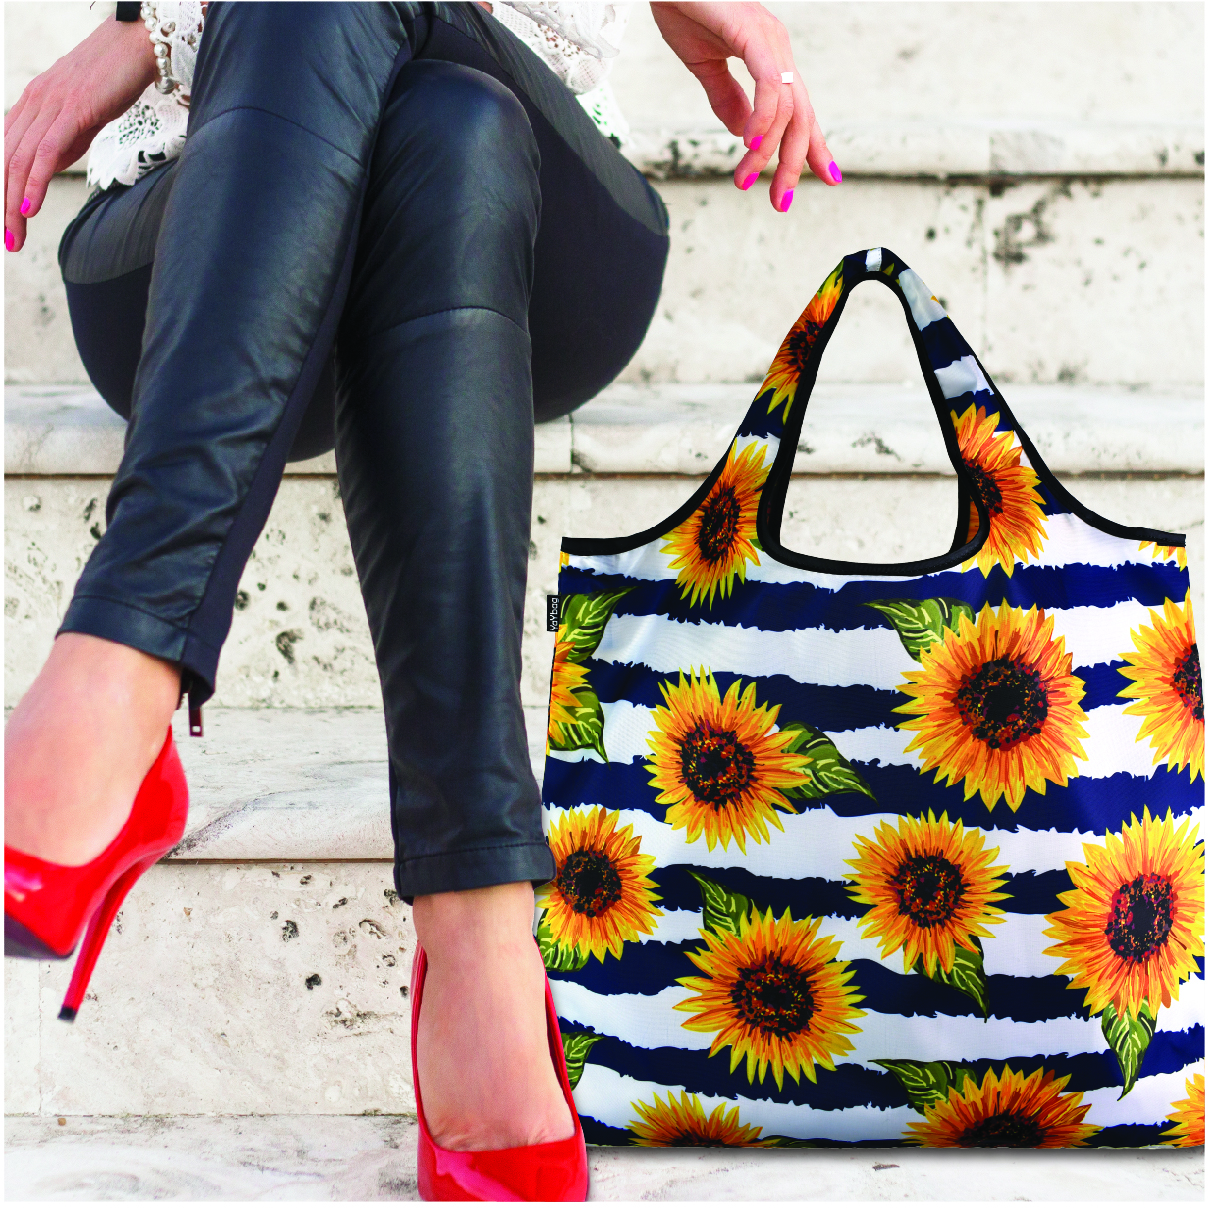 yaybag-lifestyle-sunflower.jpg